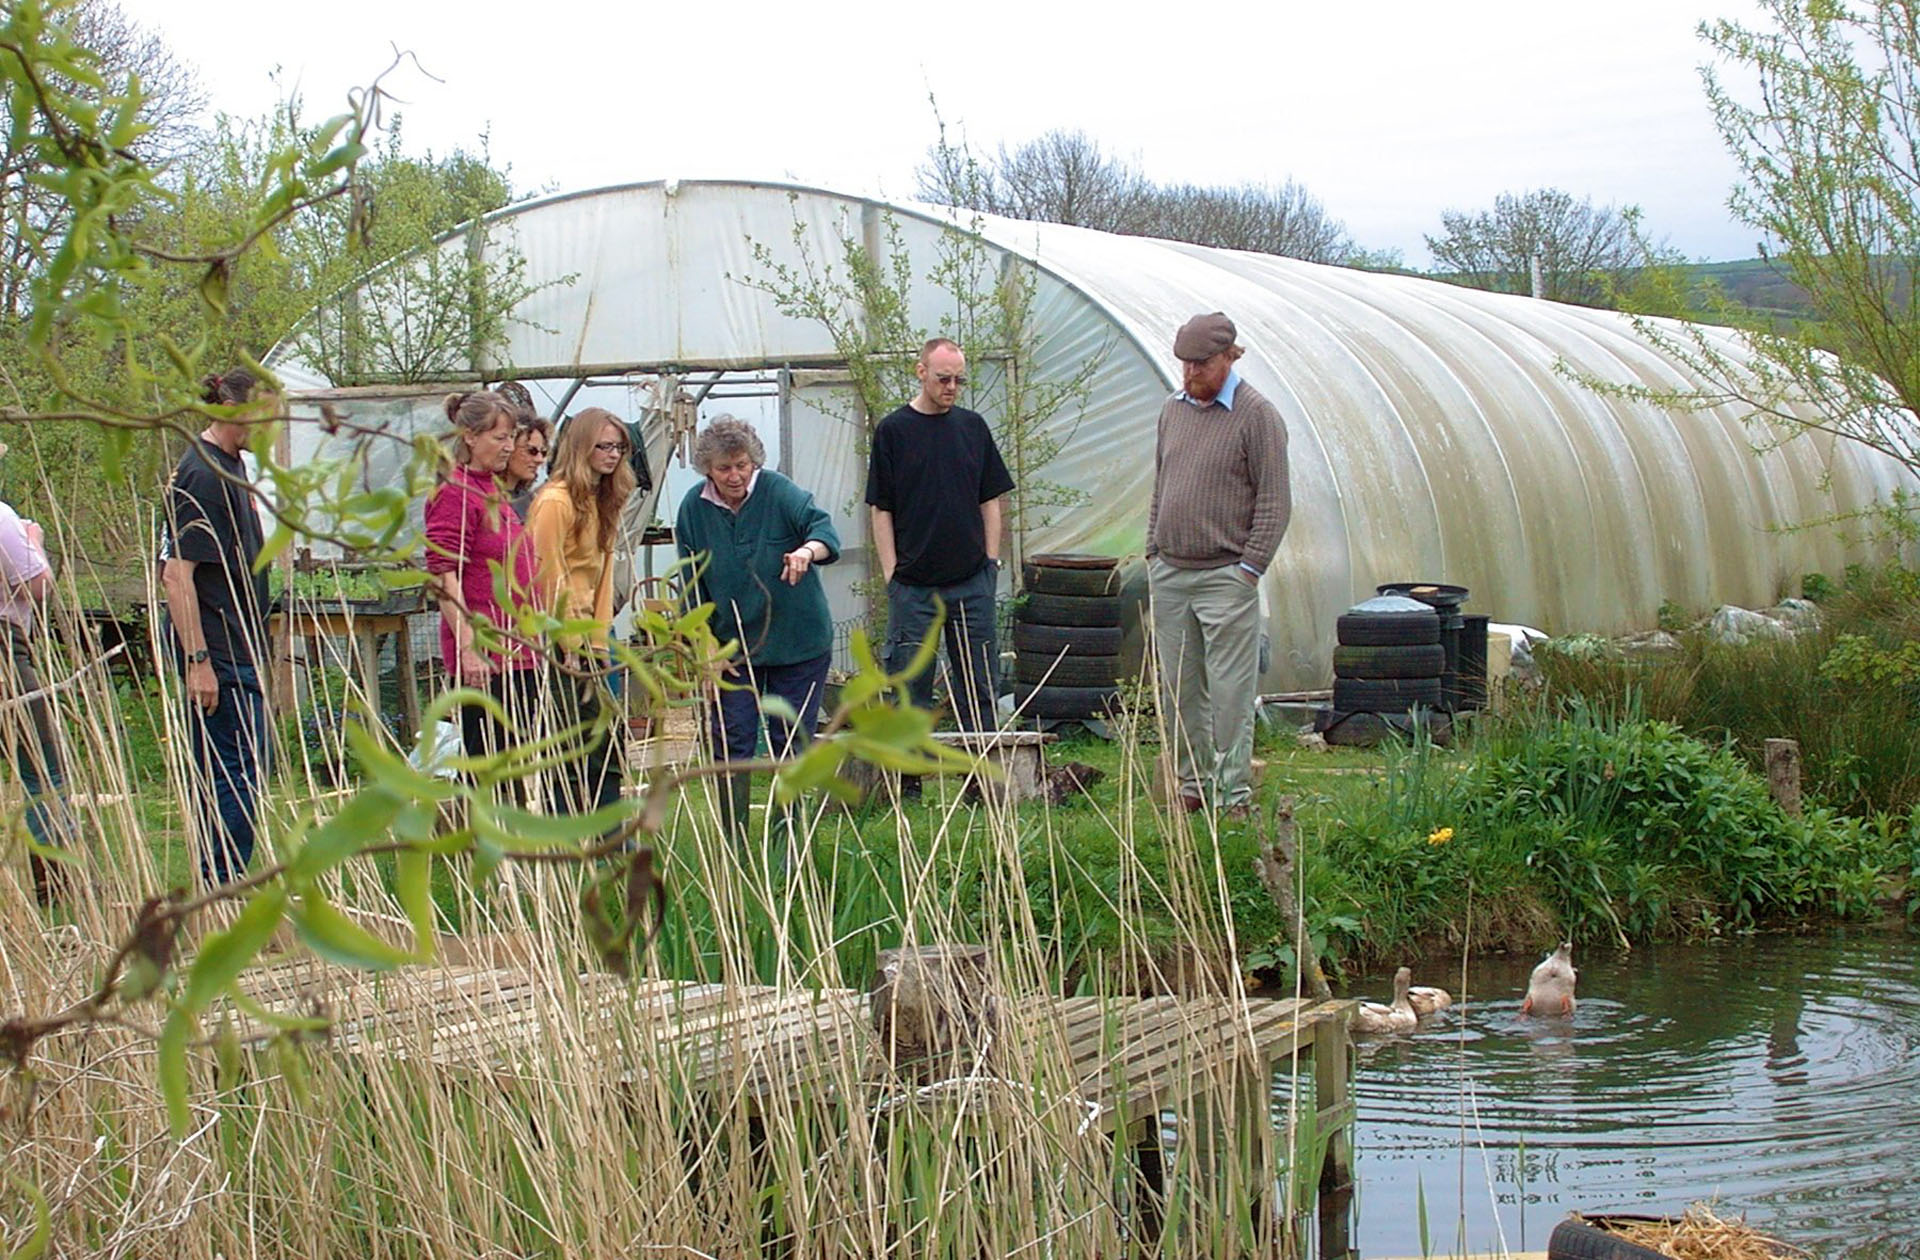 Pat explaining the pond system